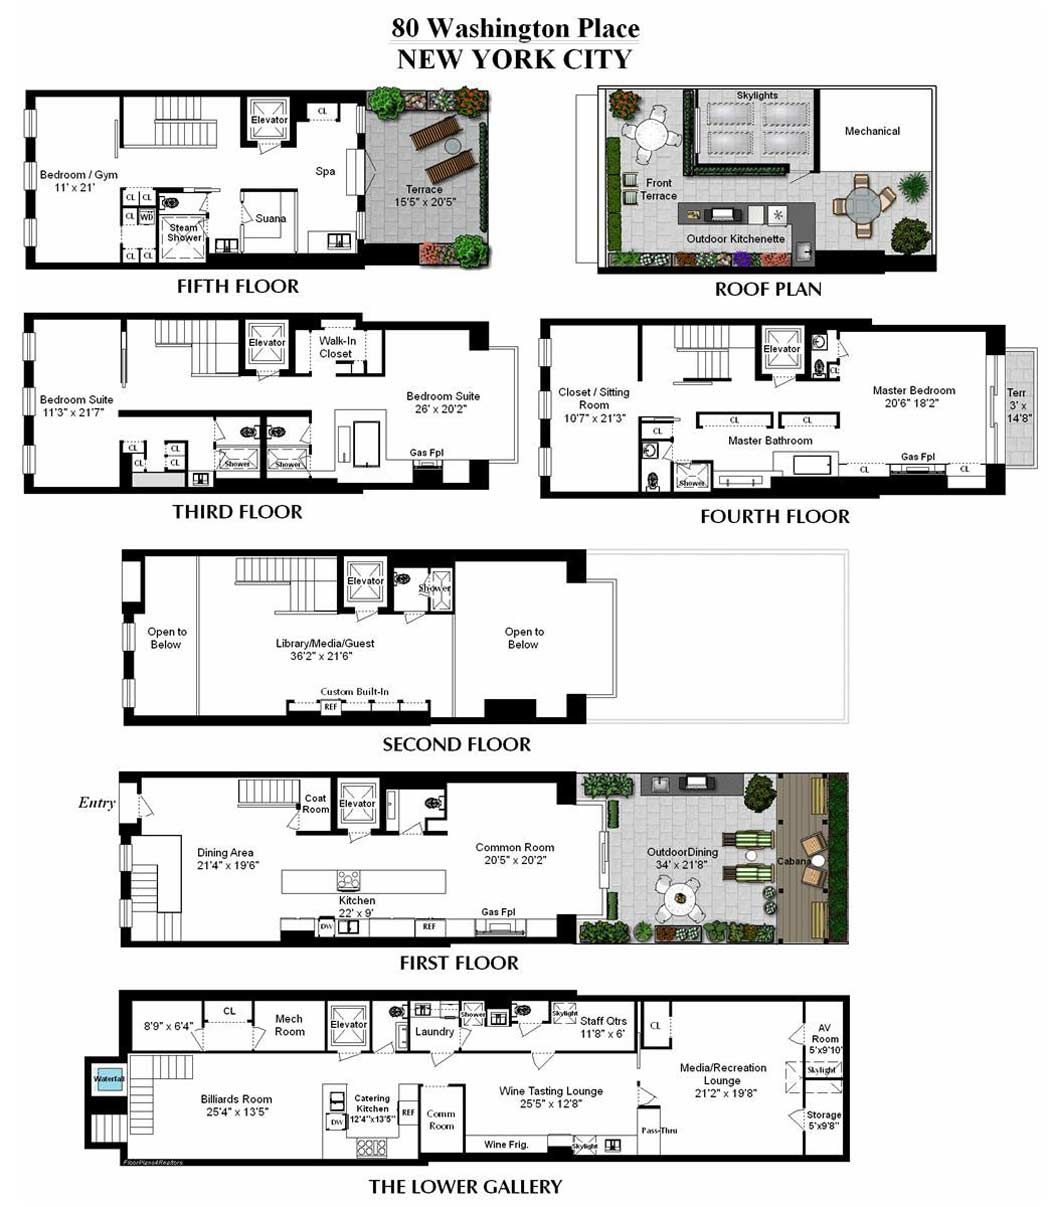 New York Brownstone Floor Plans Modify For California By Putting Garage On The Basement Level Then Floors 2 New York Brownstone Brownstone Homes Floor Plans